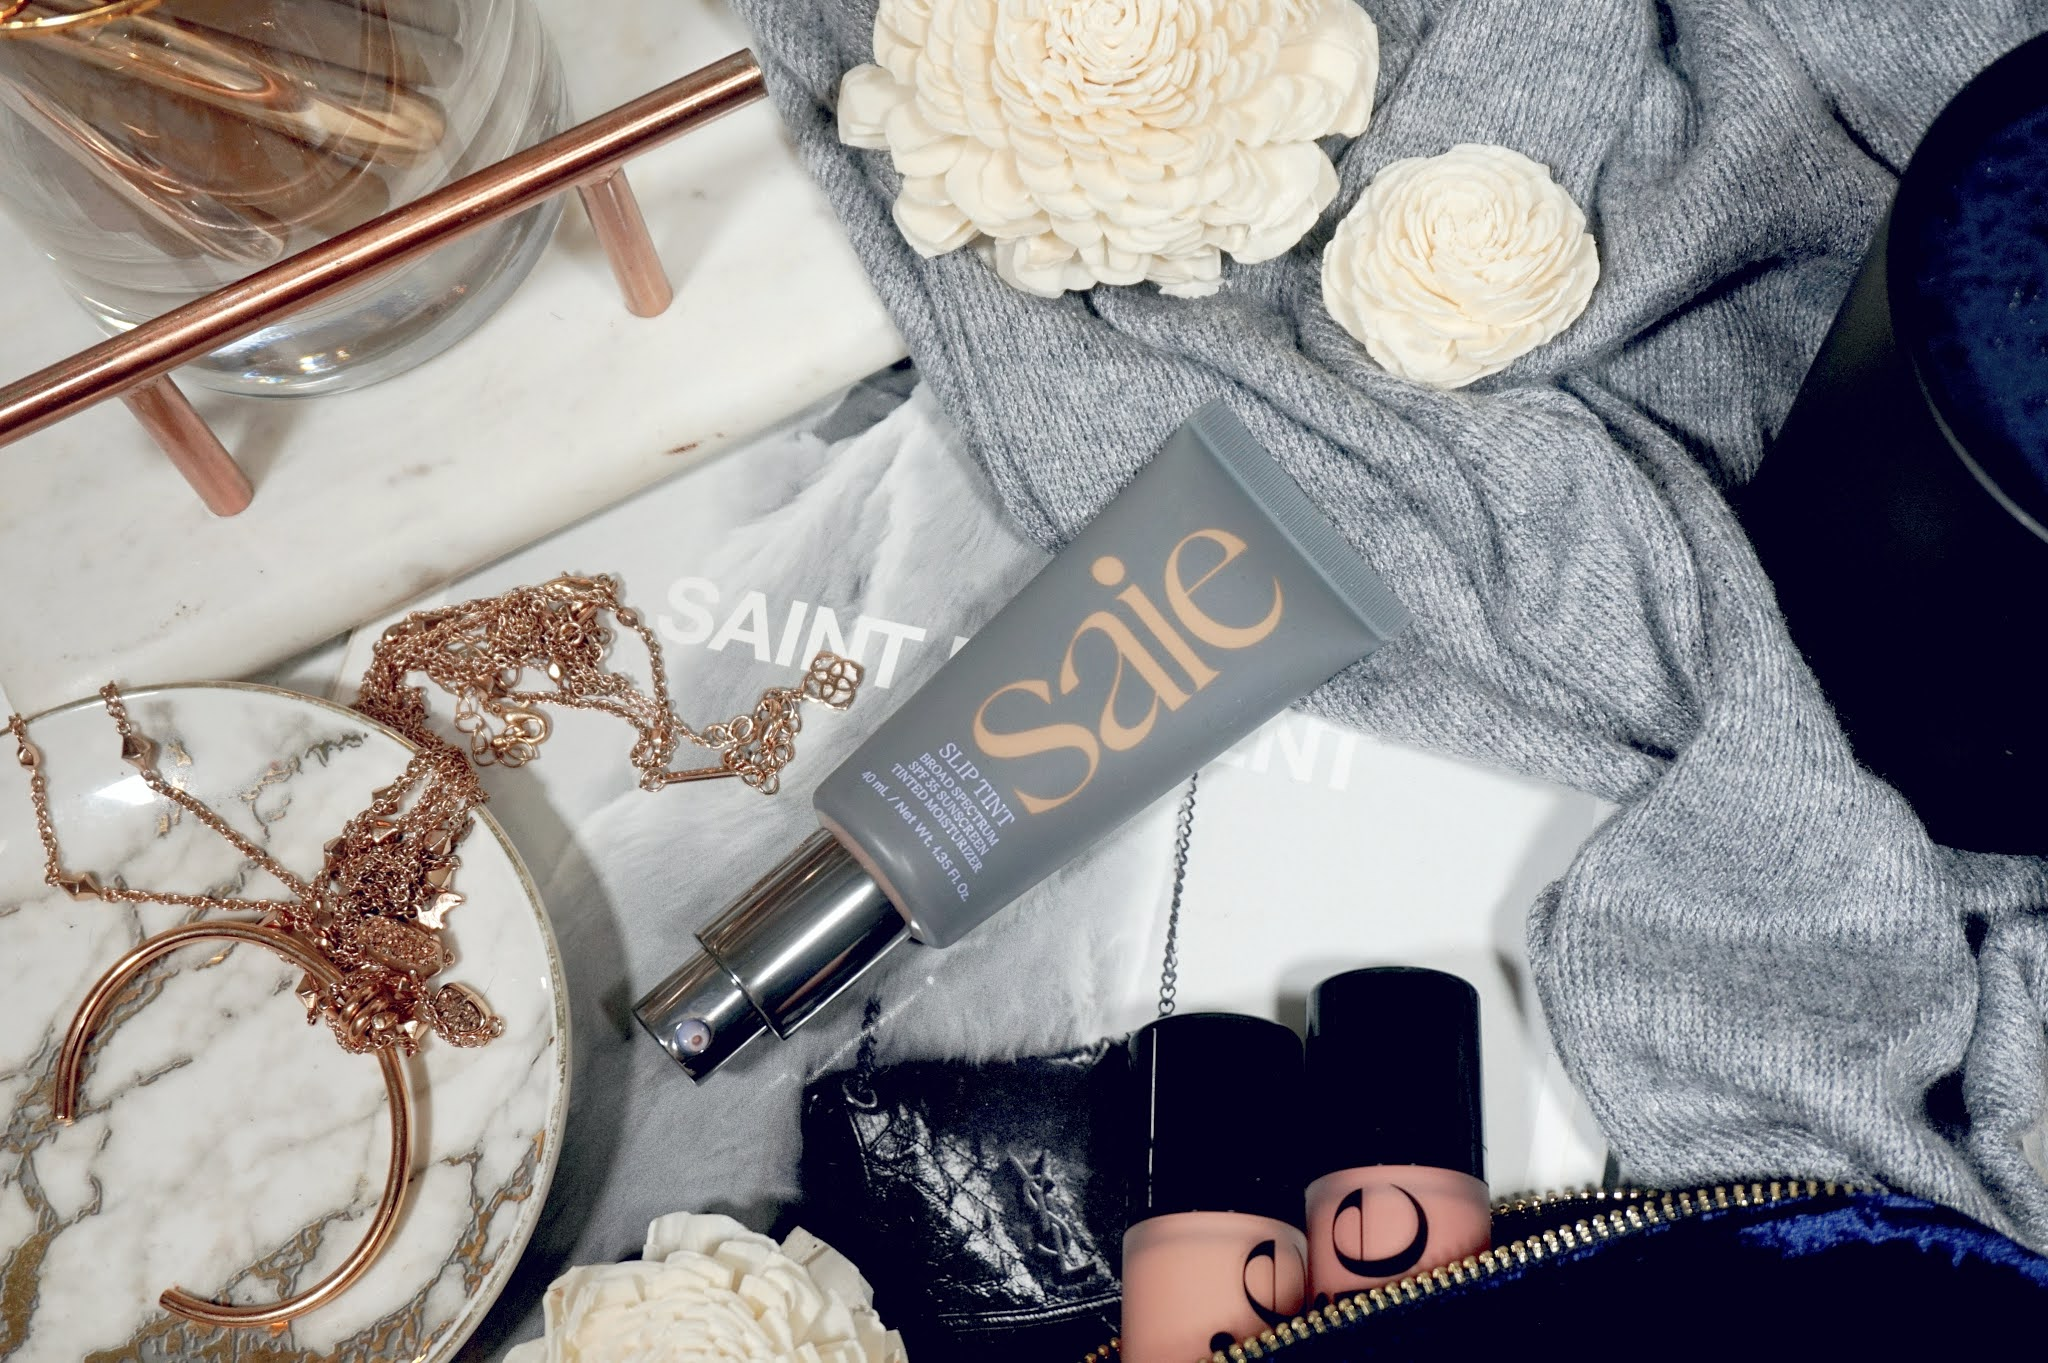 Saie Slip Tint Dewy Tinted Moisturizer SPF 35 Sunscreen Review and Swatches